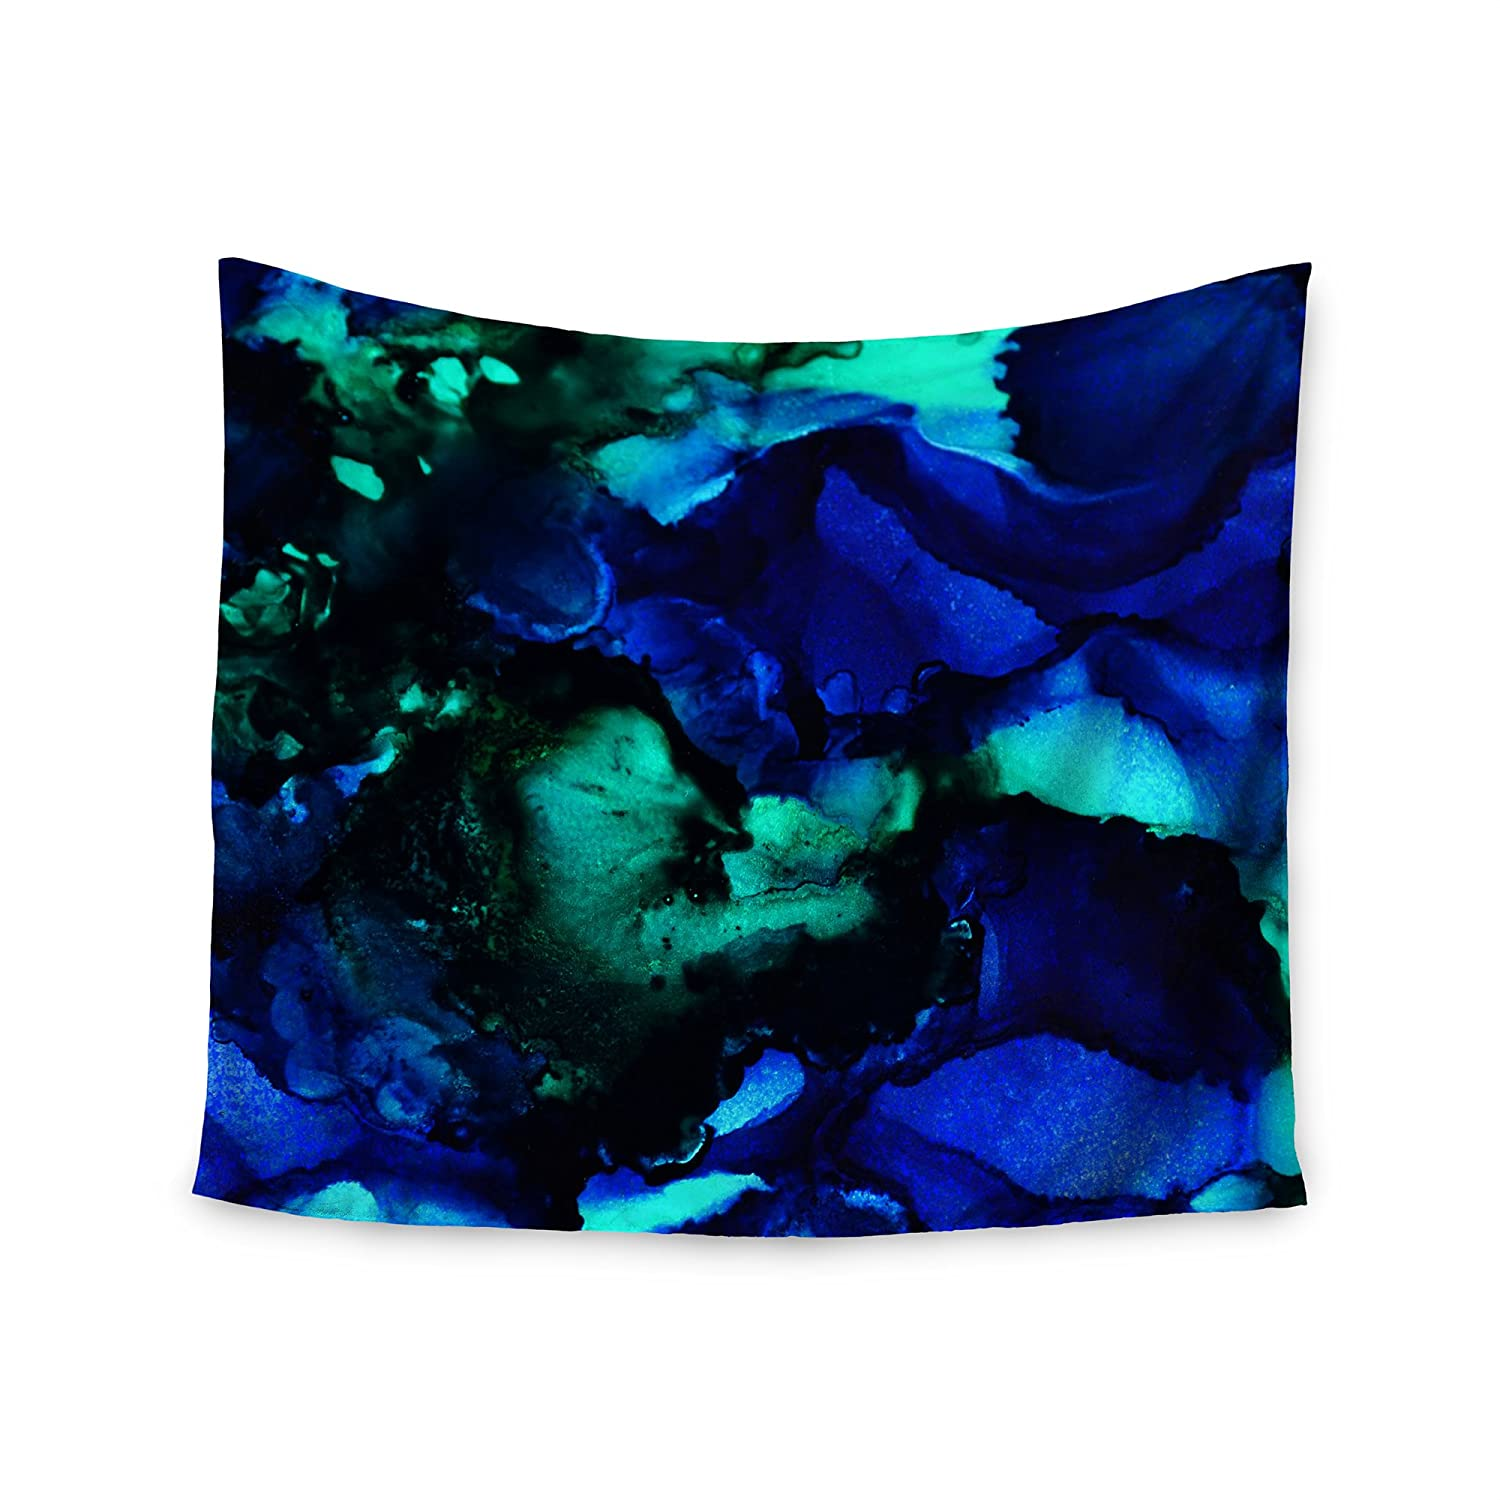 51 x 60 Wall Tapestry Kess InHouse Claire Day Neptune Blue Multicolor Painting